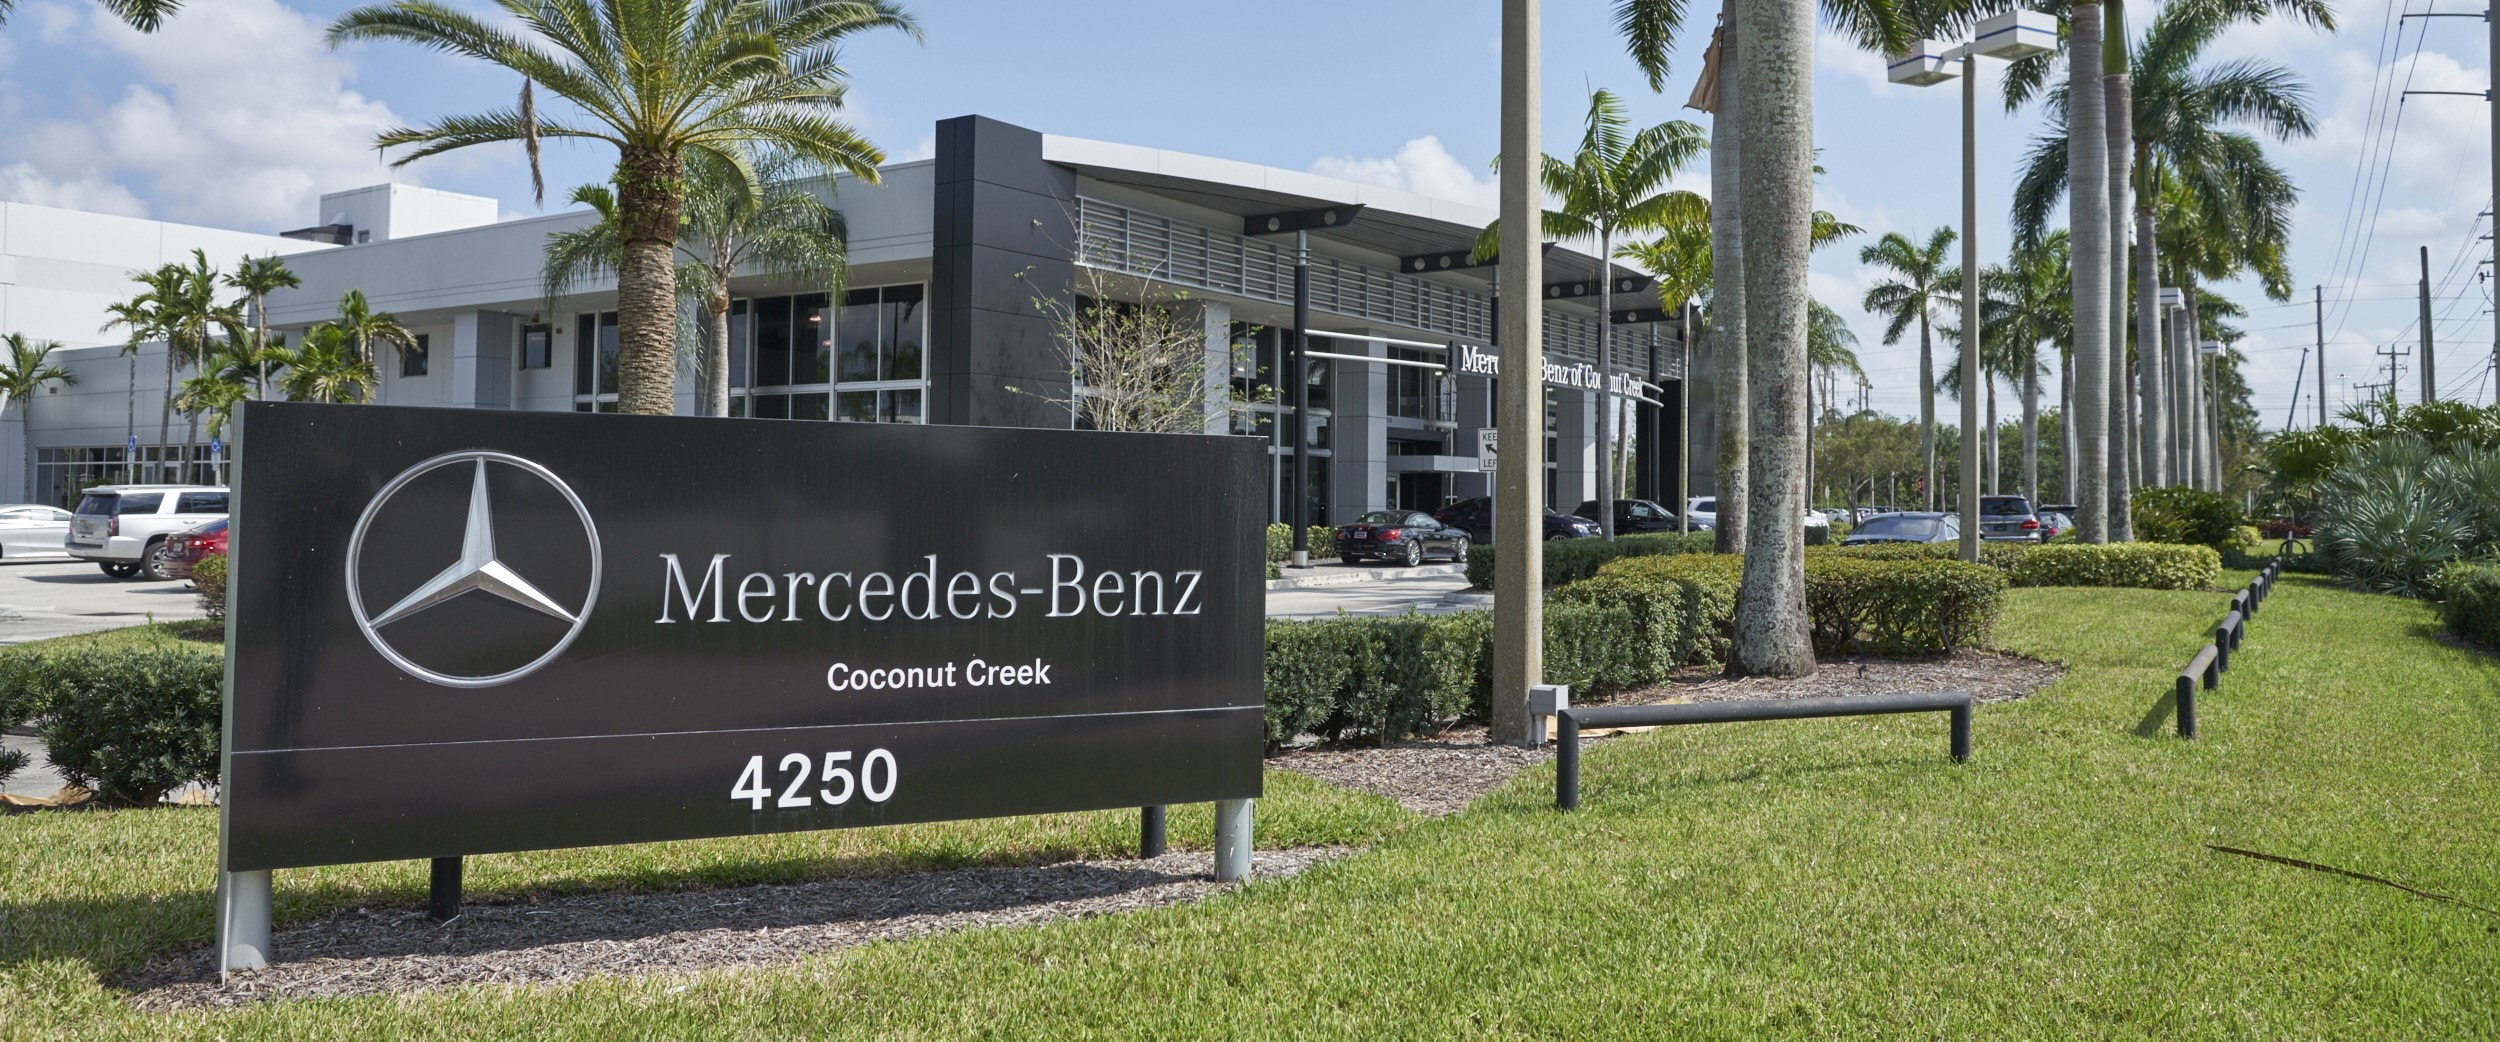 Exterior view of Mercedes-Benz of Coconut Creek during the day